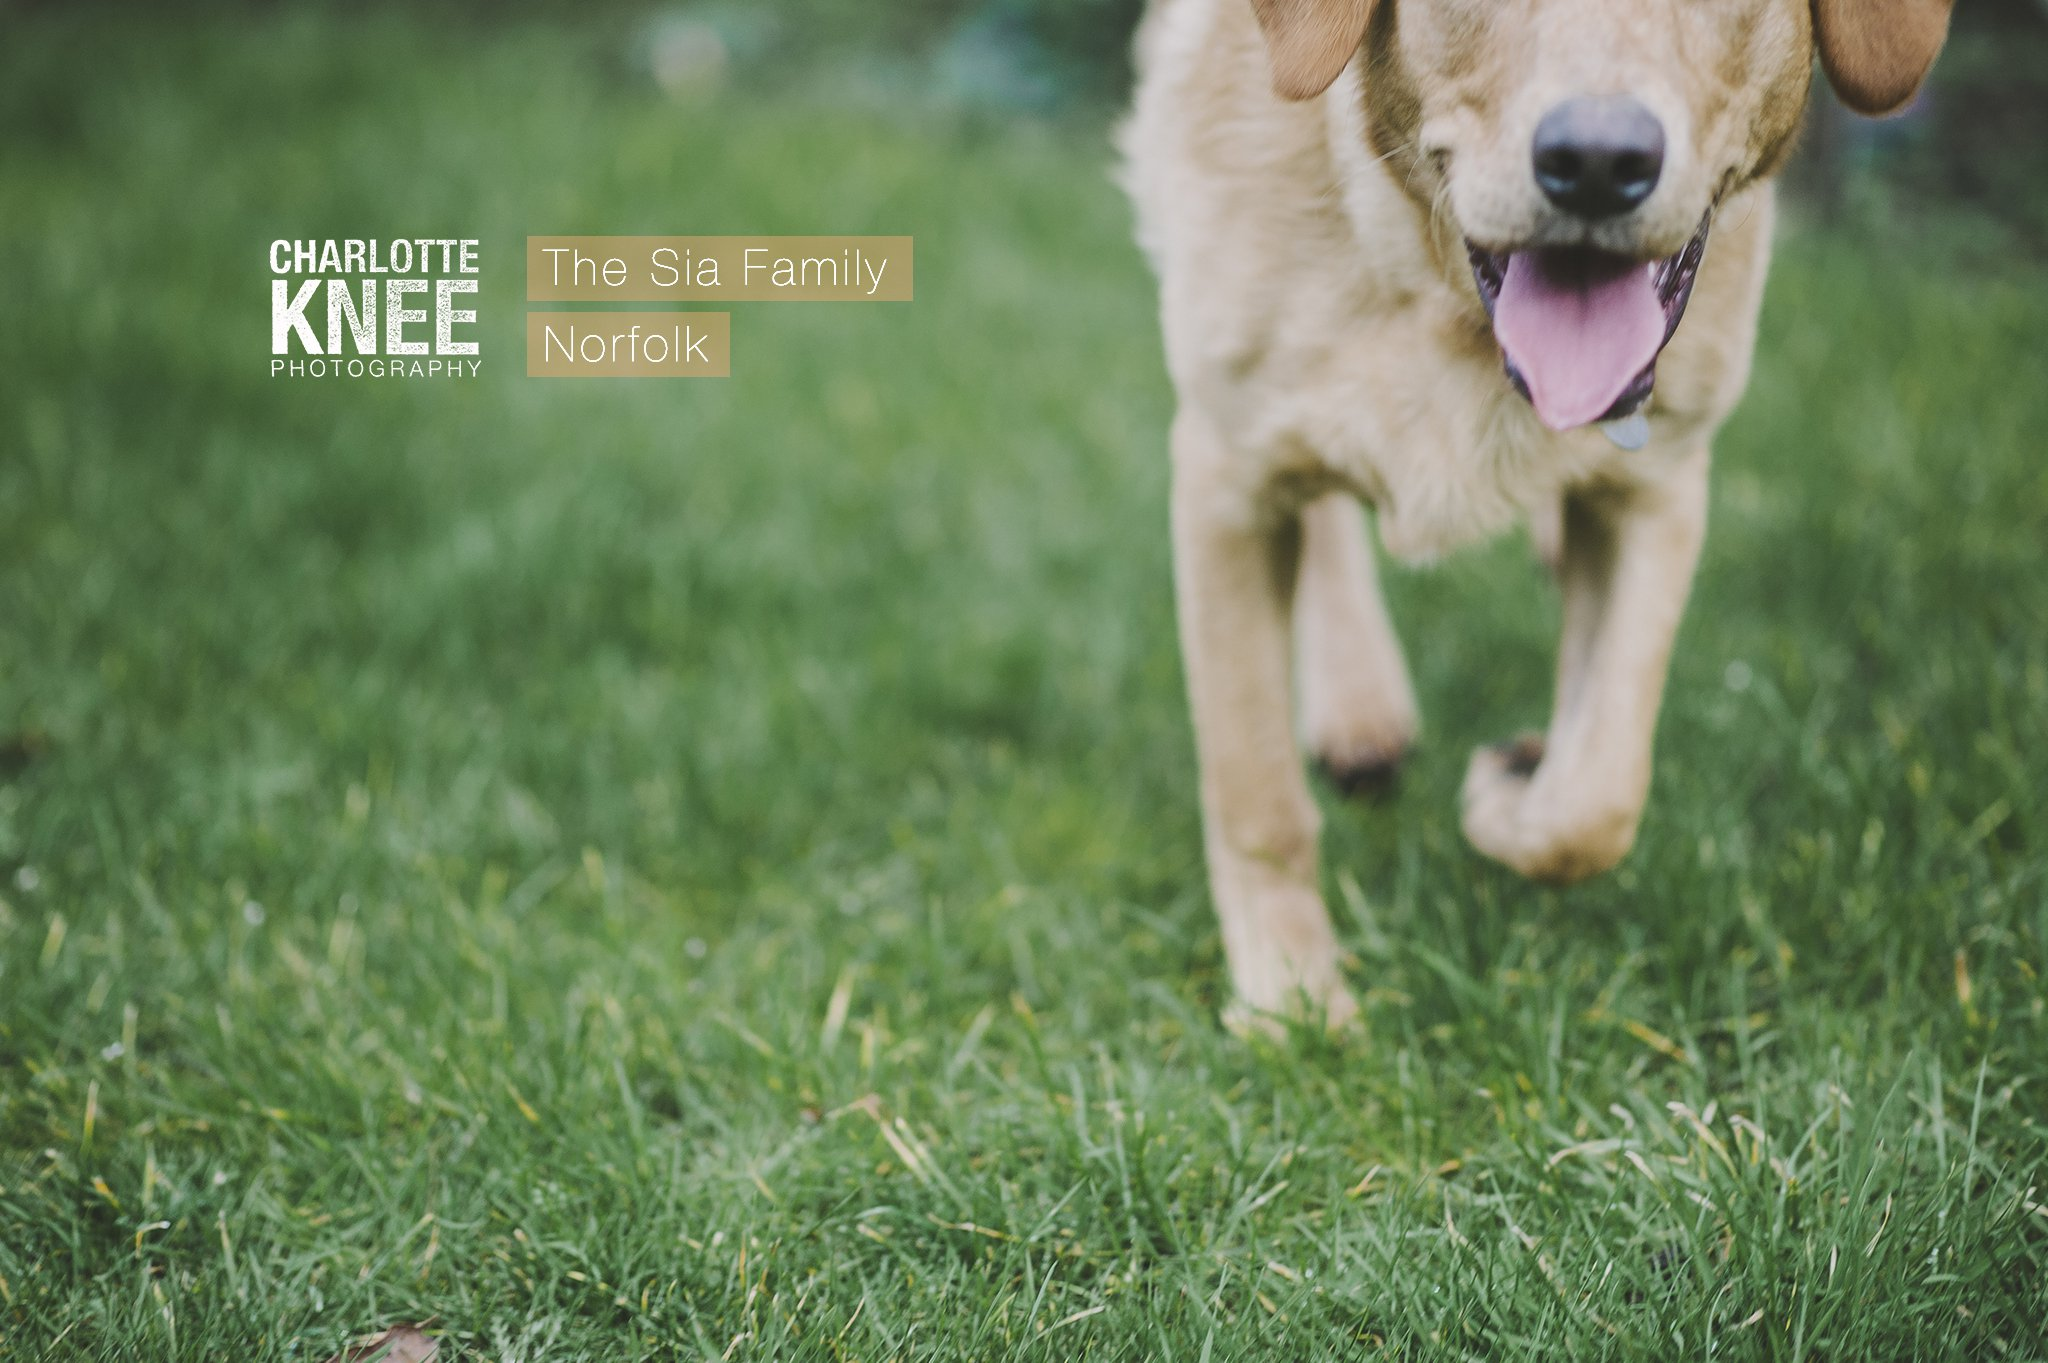 Family-Pet-Dog-Portrait-Photography-Charlotte-Knee-Photography